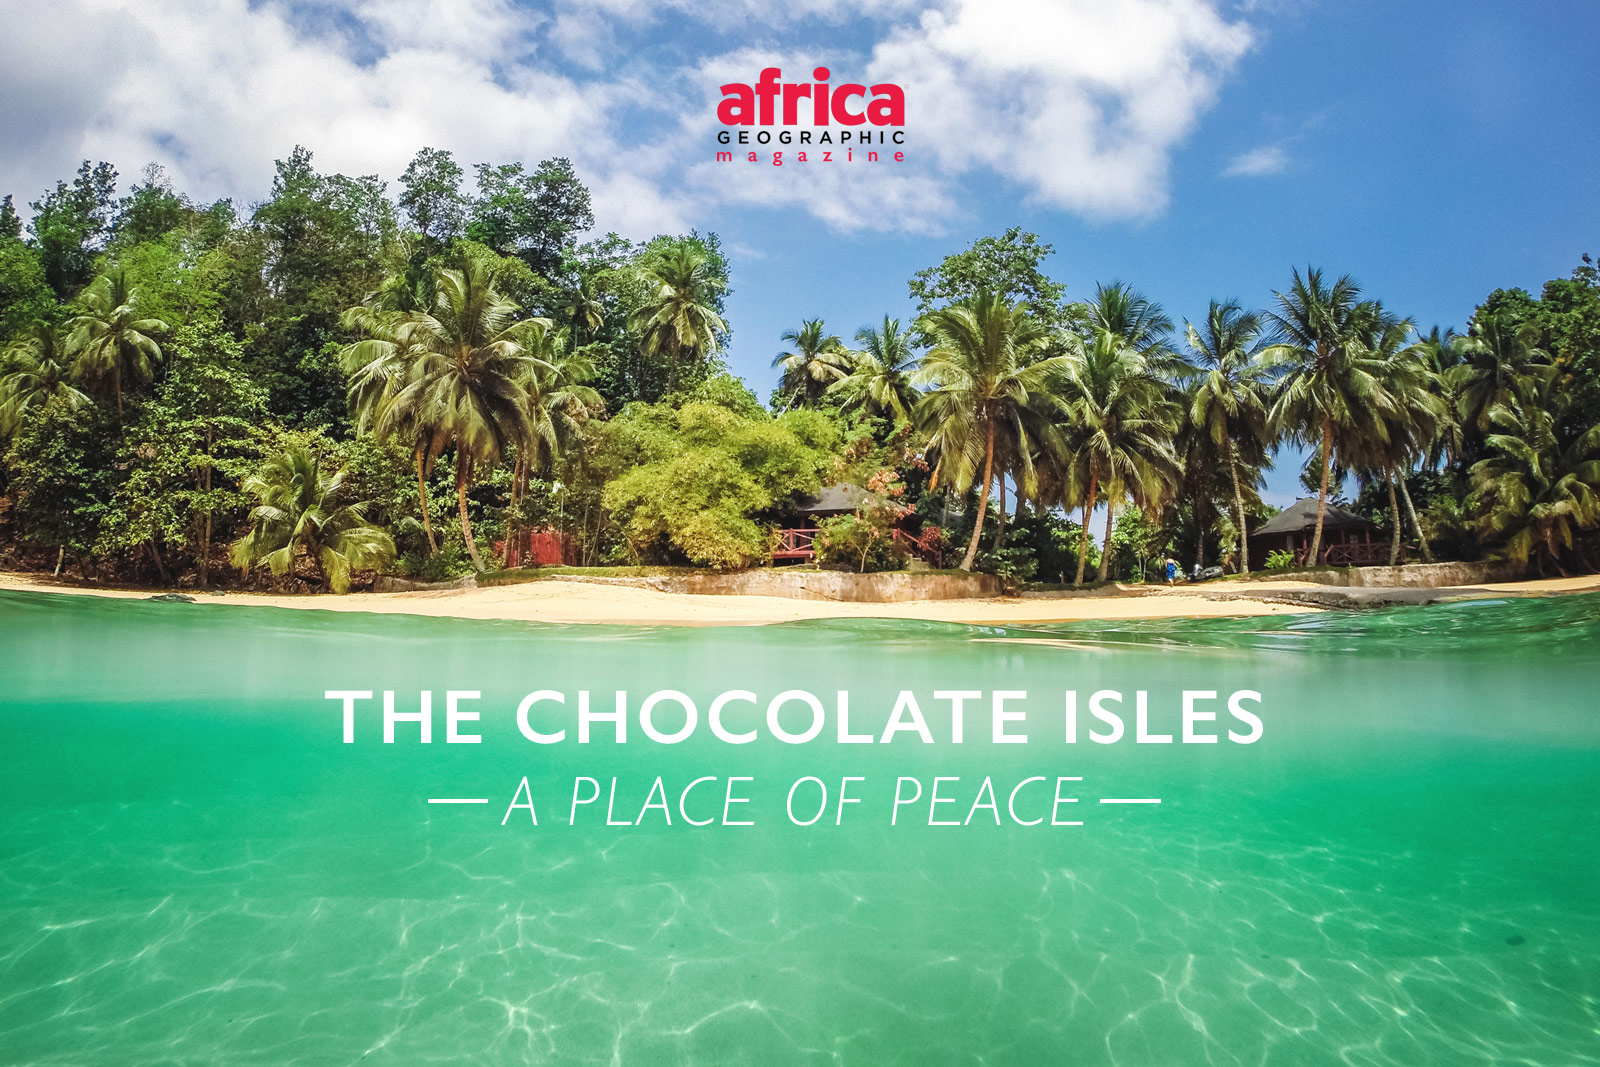 choclate-isles-paradise-islands-header-2